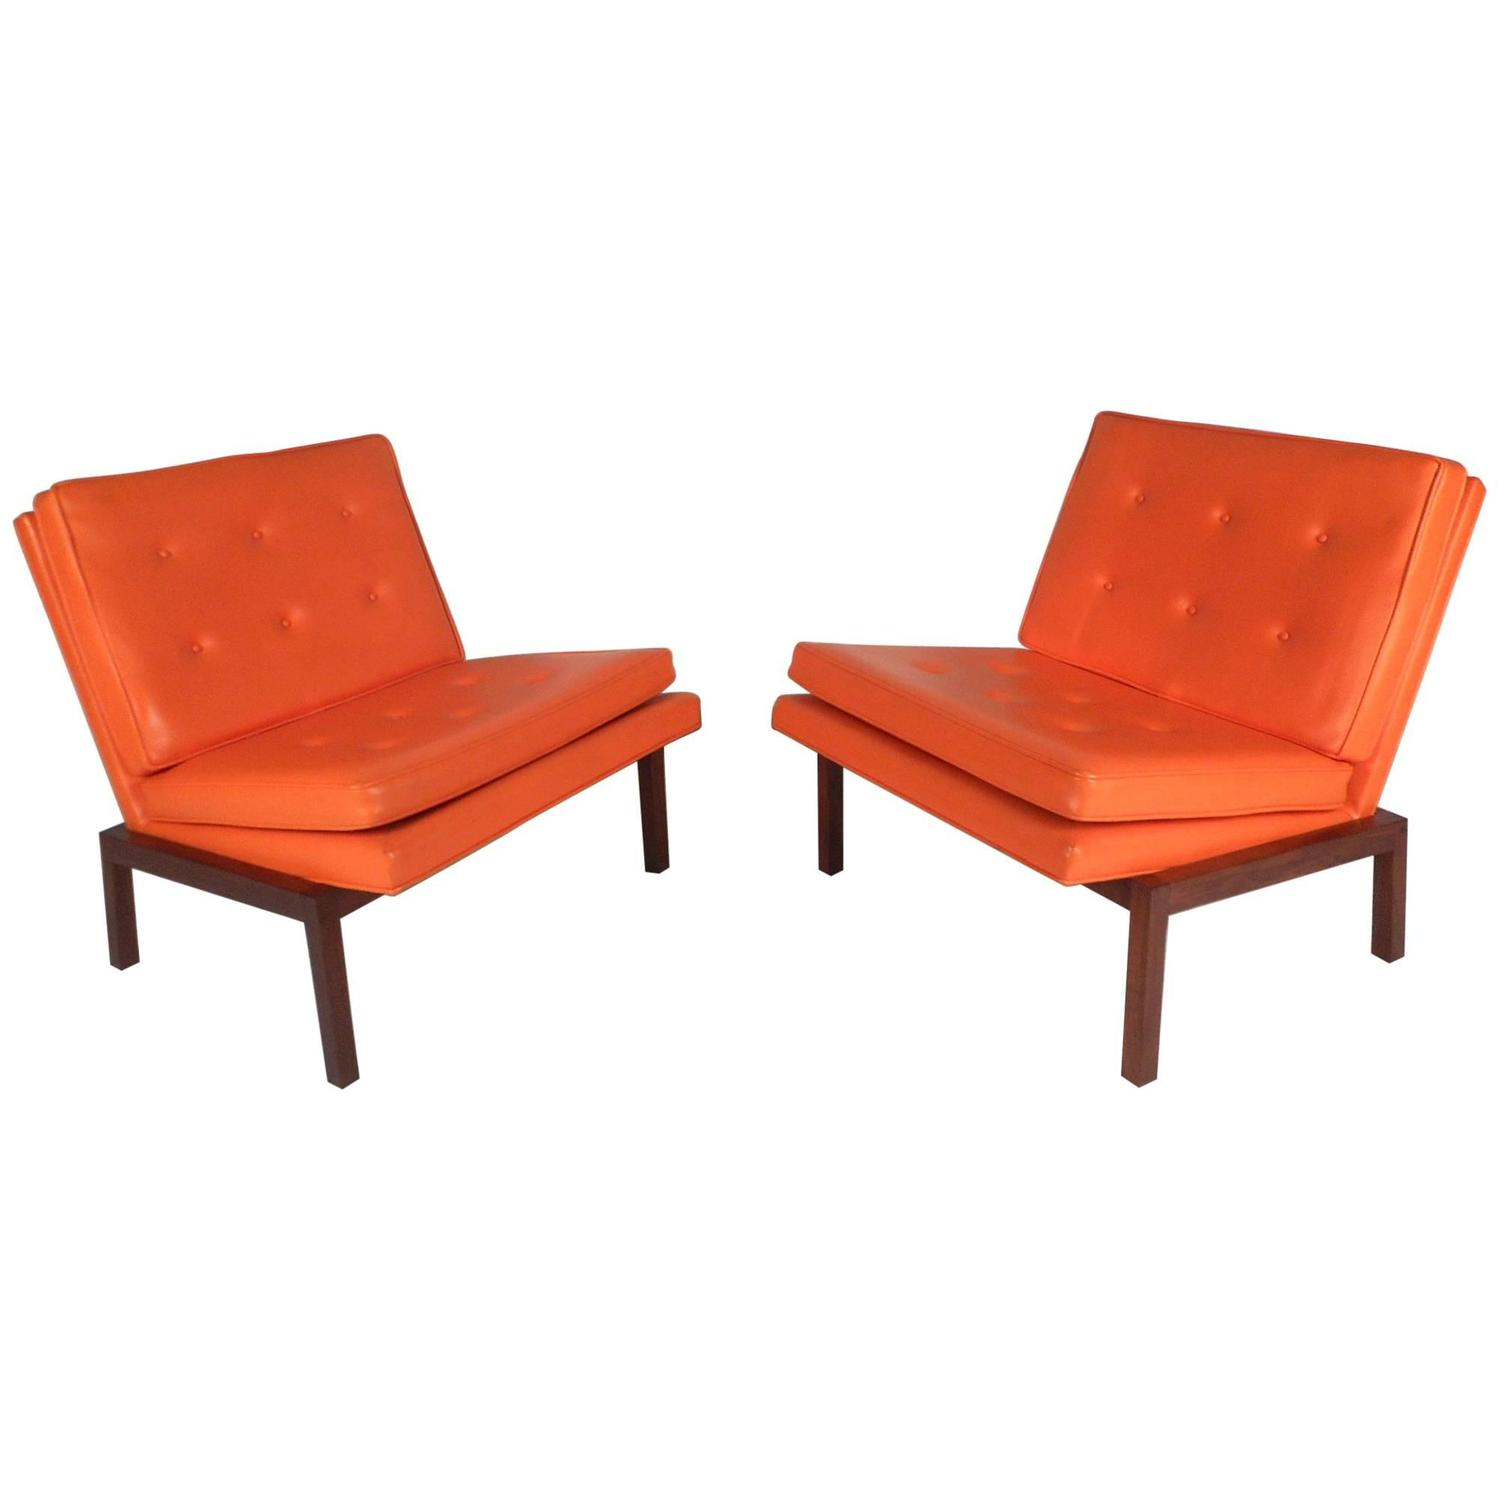 Mid Century Modern Slipper Lounge Chairs By Milo Baughman For Thayer Coggin At 1stdibs